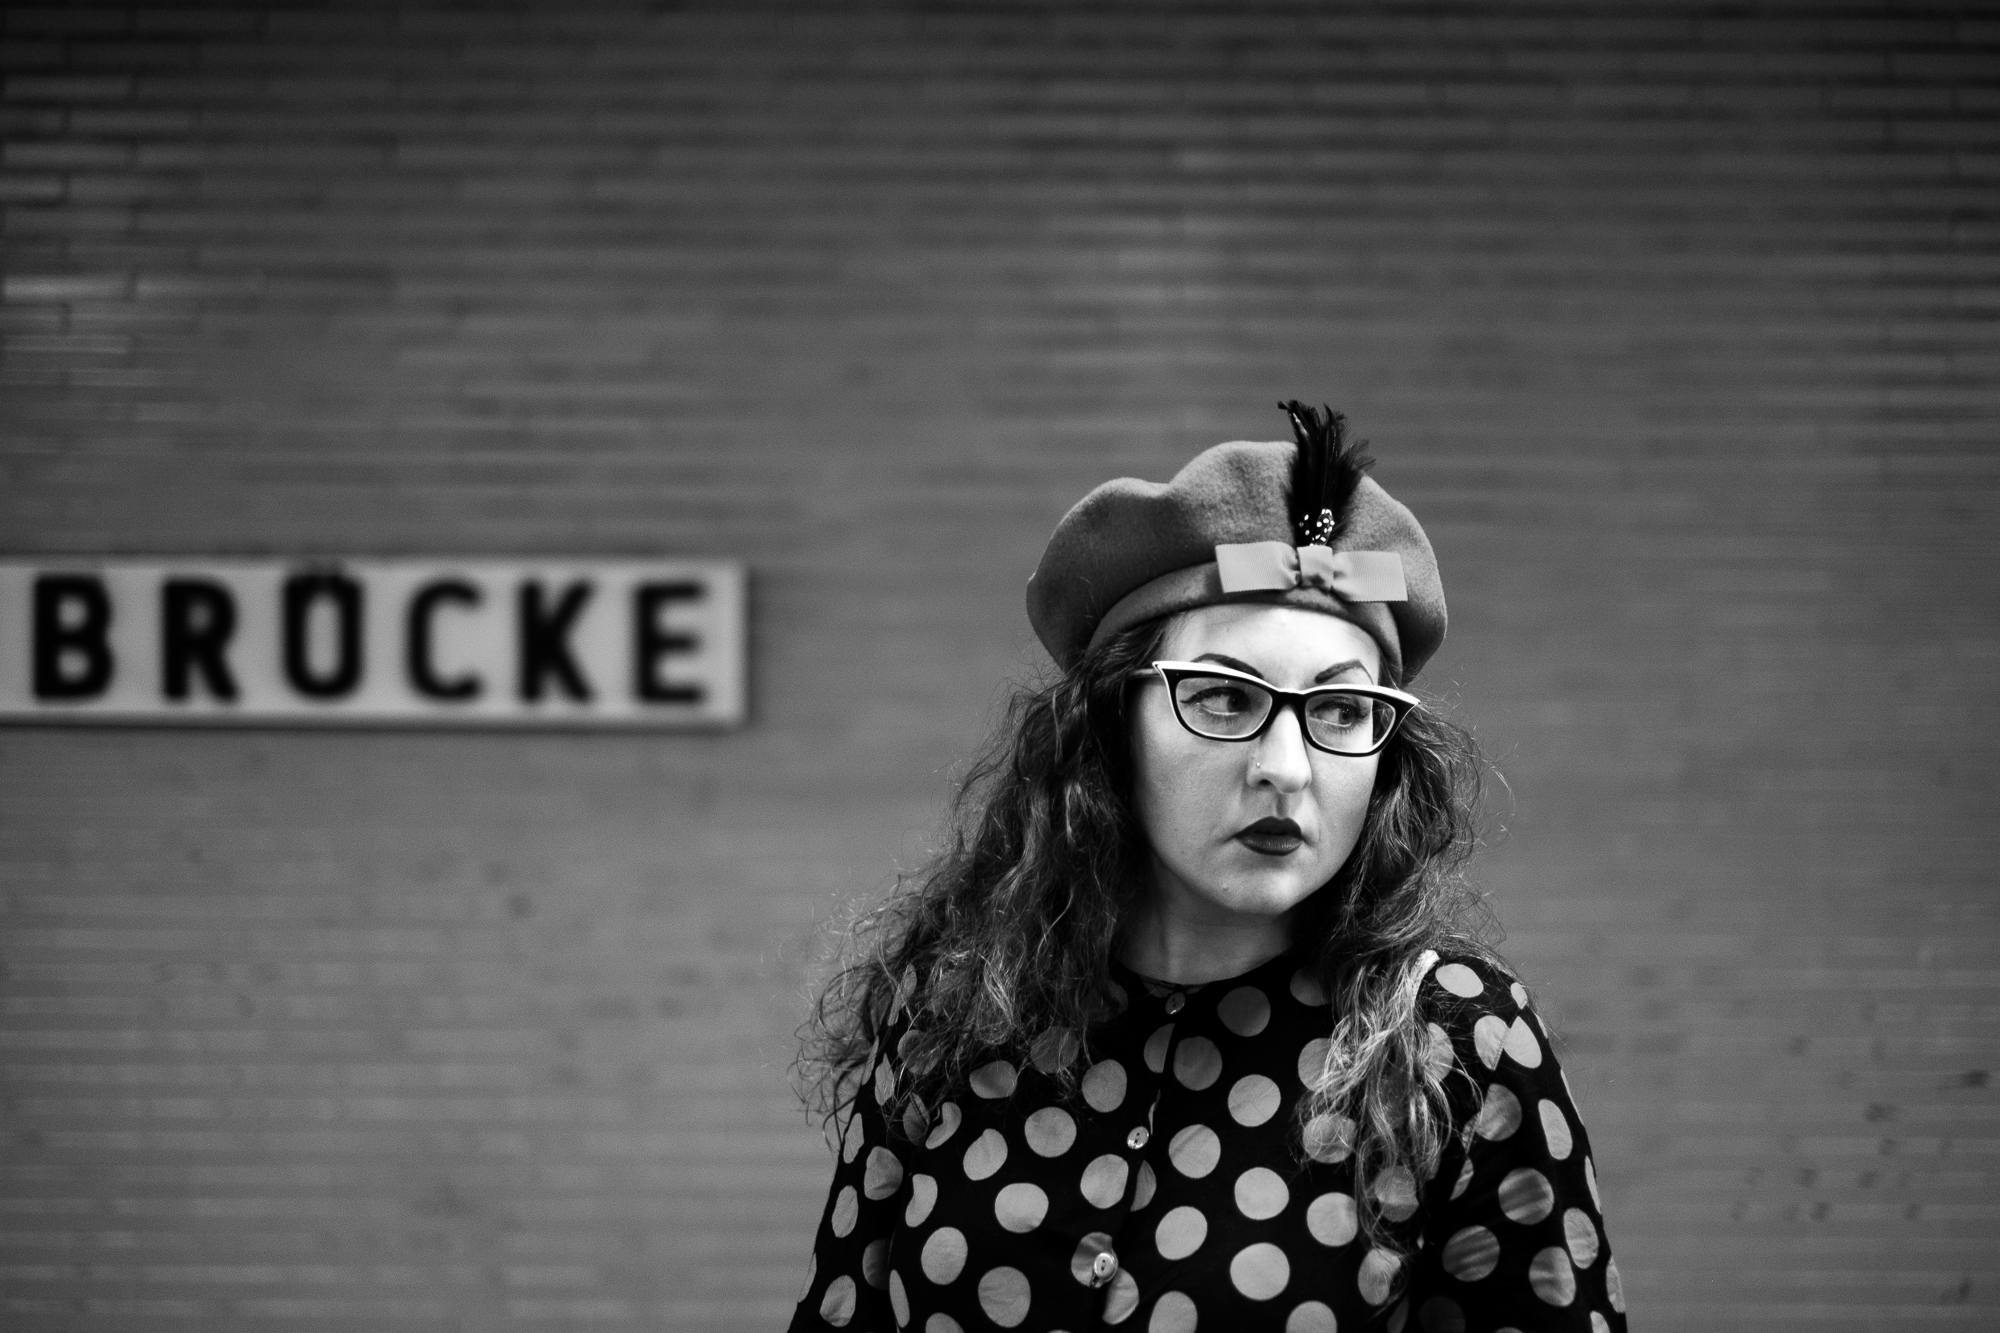 A portrait of a girl, Natalie waiting in a Berlin subway station